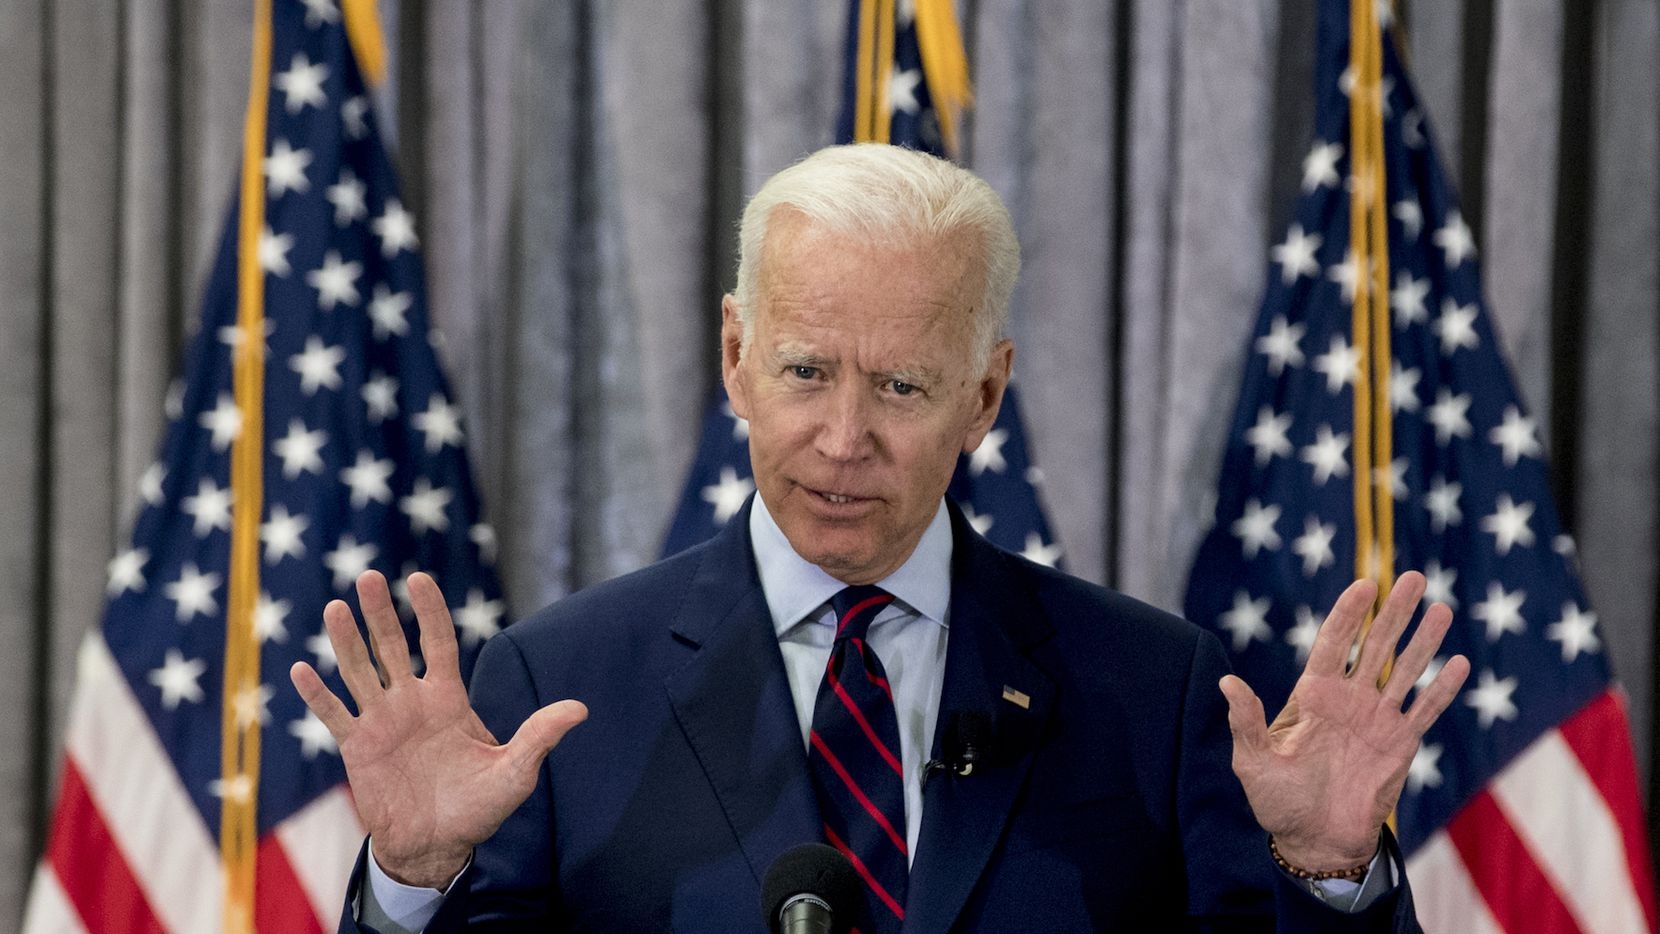 Former Vice President Joe Biden, a 2020 Democratic presidential hopeful, speaks during a town all meeting with a group of educators from the American Federation of Teachers on Tuesday, May 28, 2019, in Houston.  (Brett Coomer/Houston Chronicle via AP)